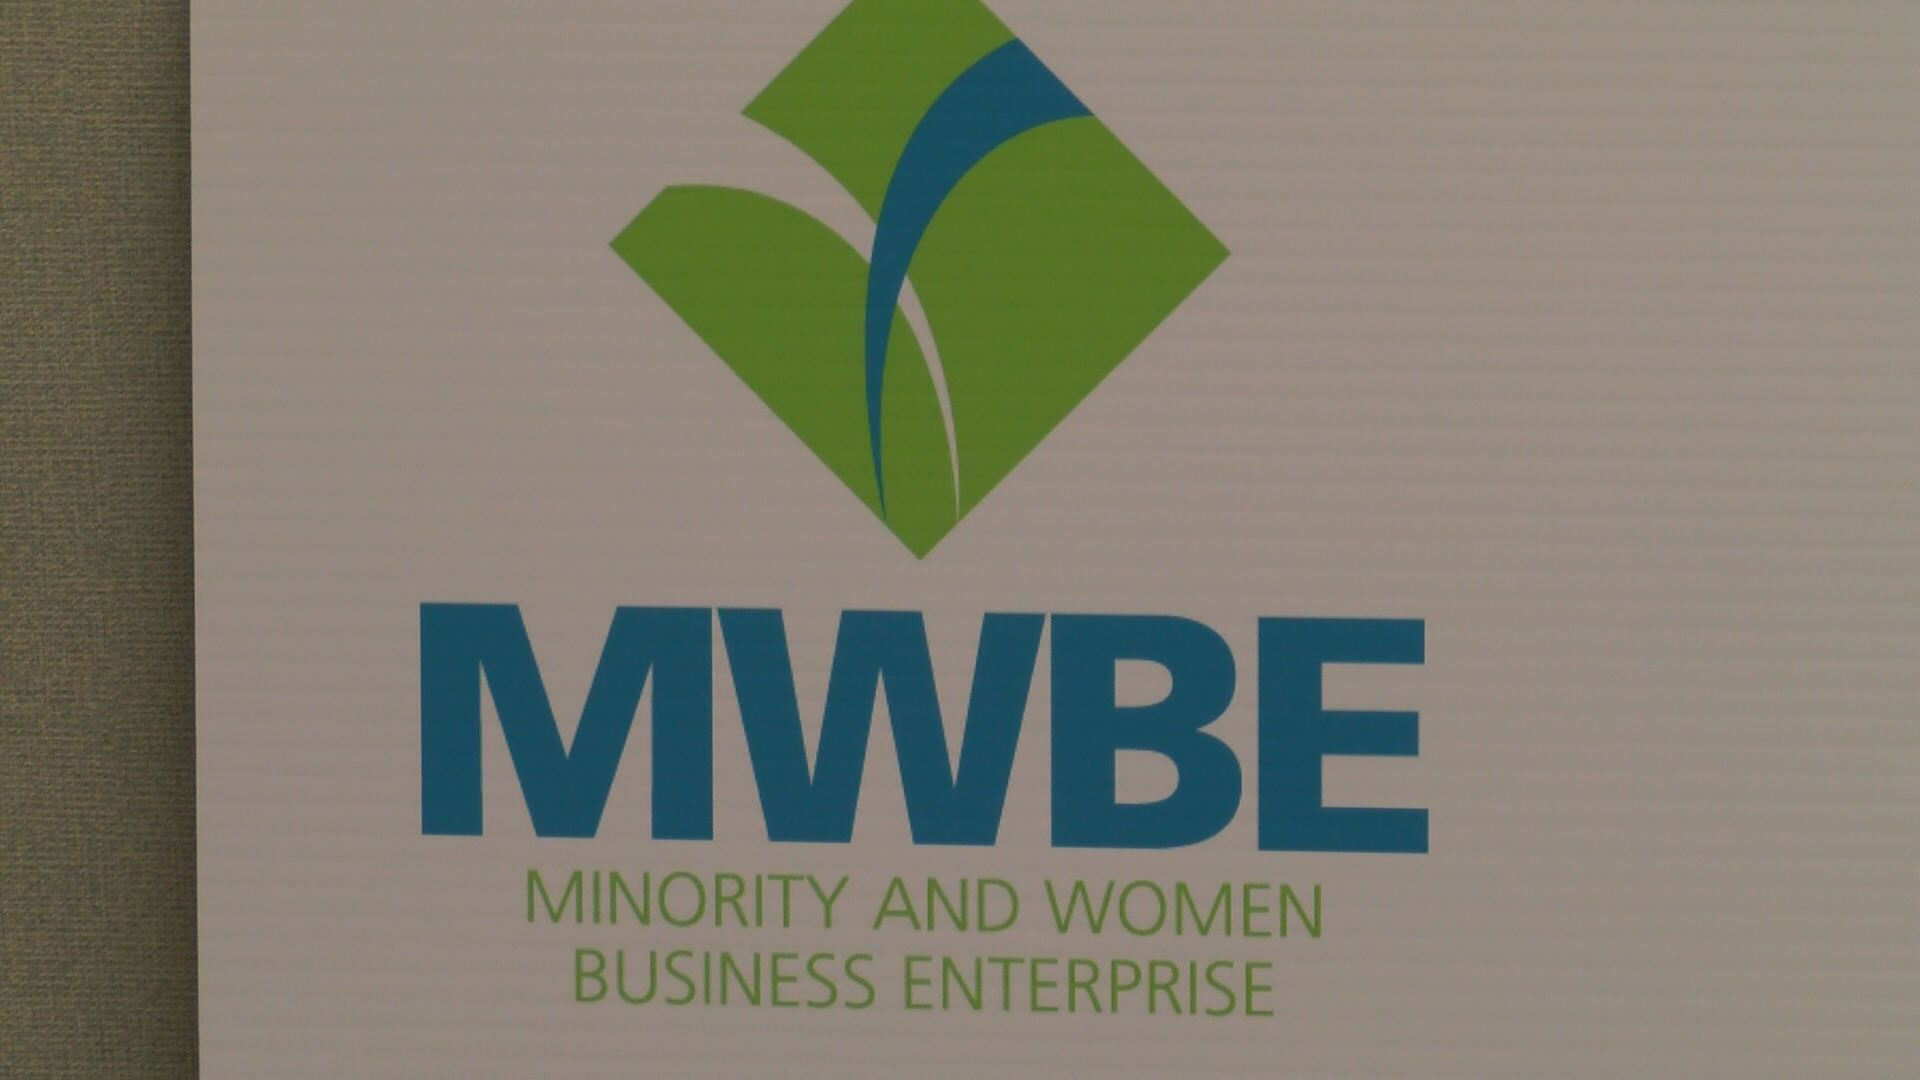 MINORITY WOMEN BUS_80270